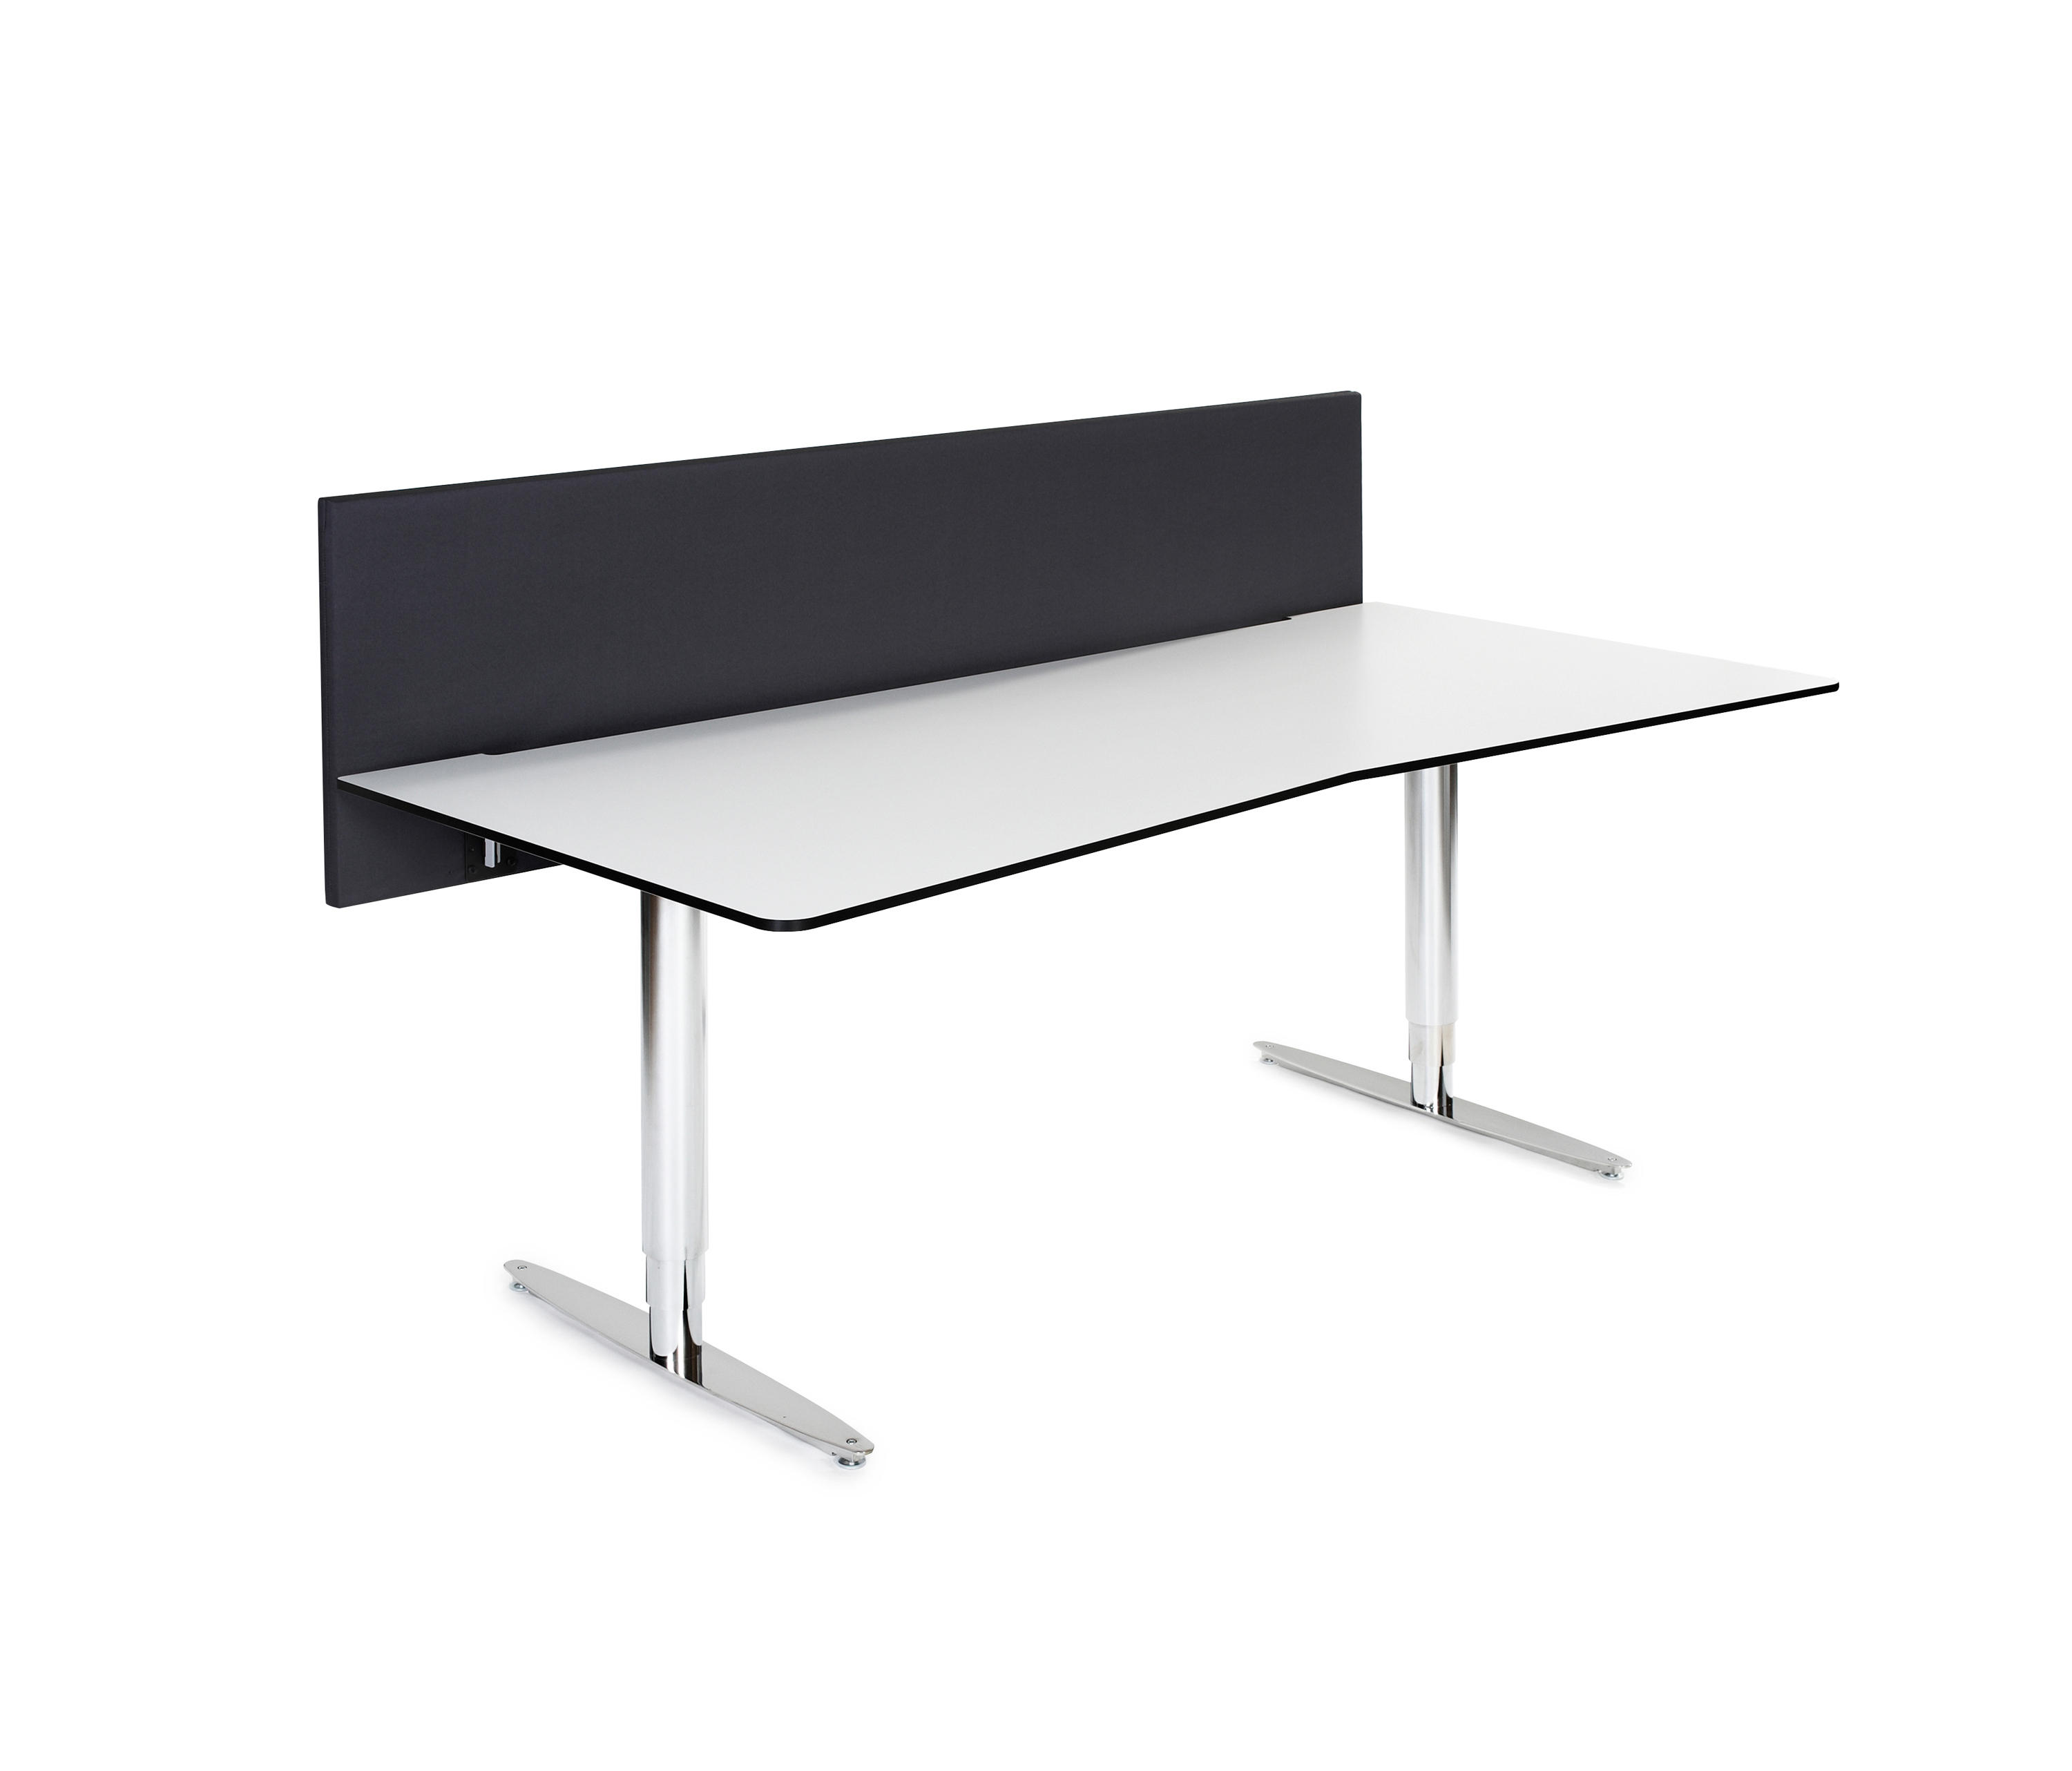 DELTA FLEX - ELECTRIC SIT & STAND FRAME - Contract tables from ...